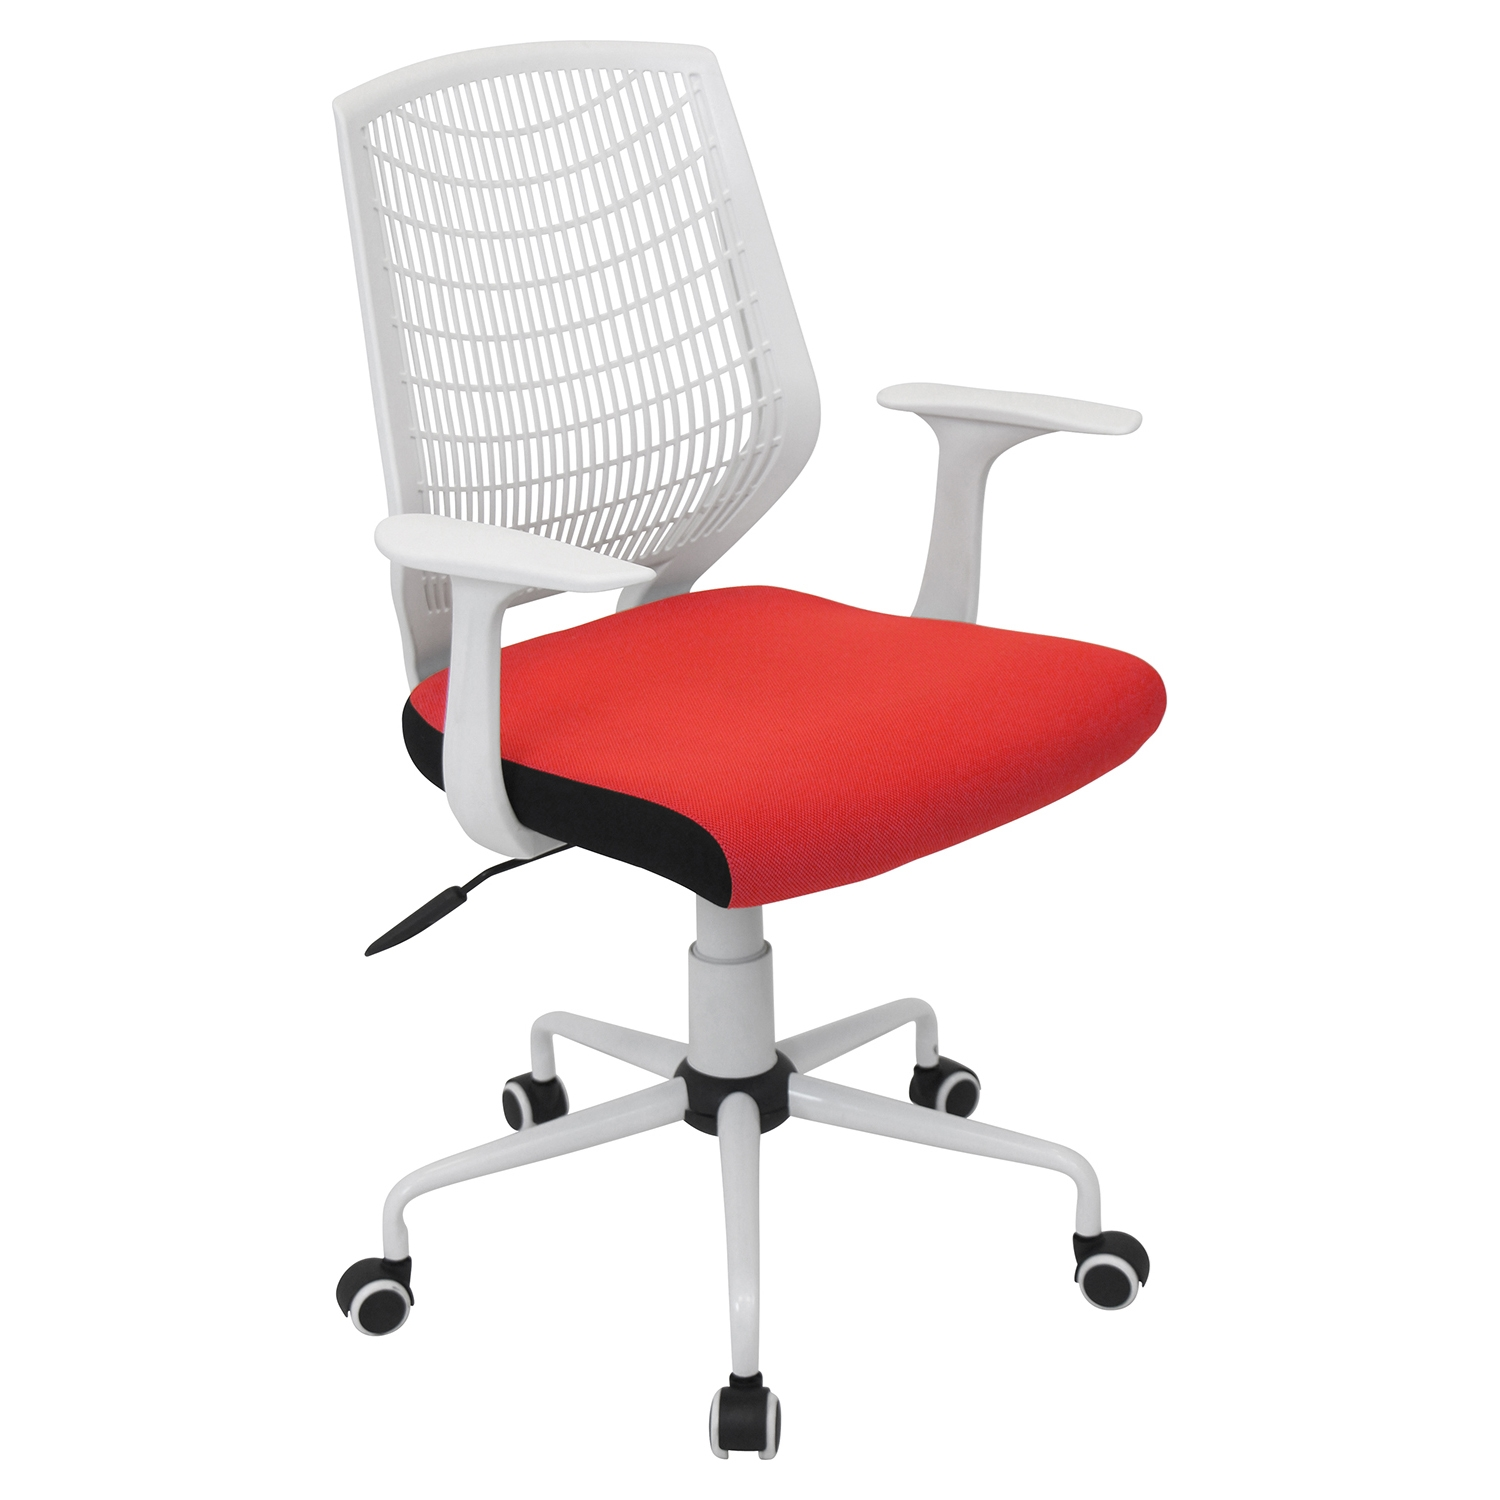 Network Height Adjustable Office Chair - Swivel, White, Red - LMS-OFC-NET-W-R